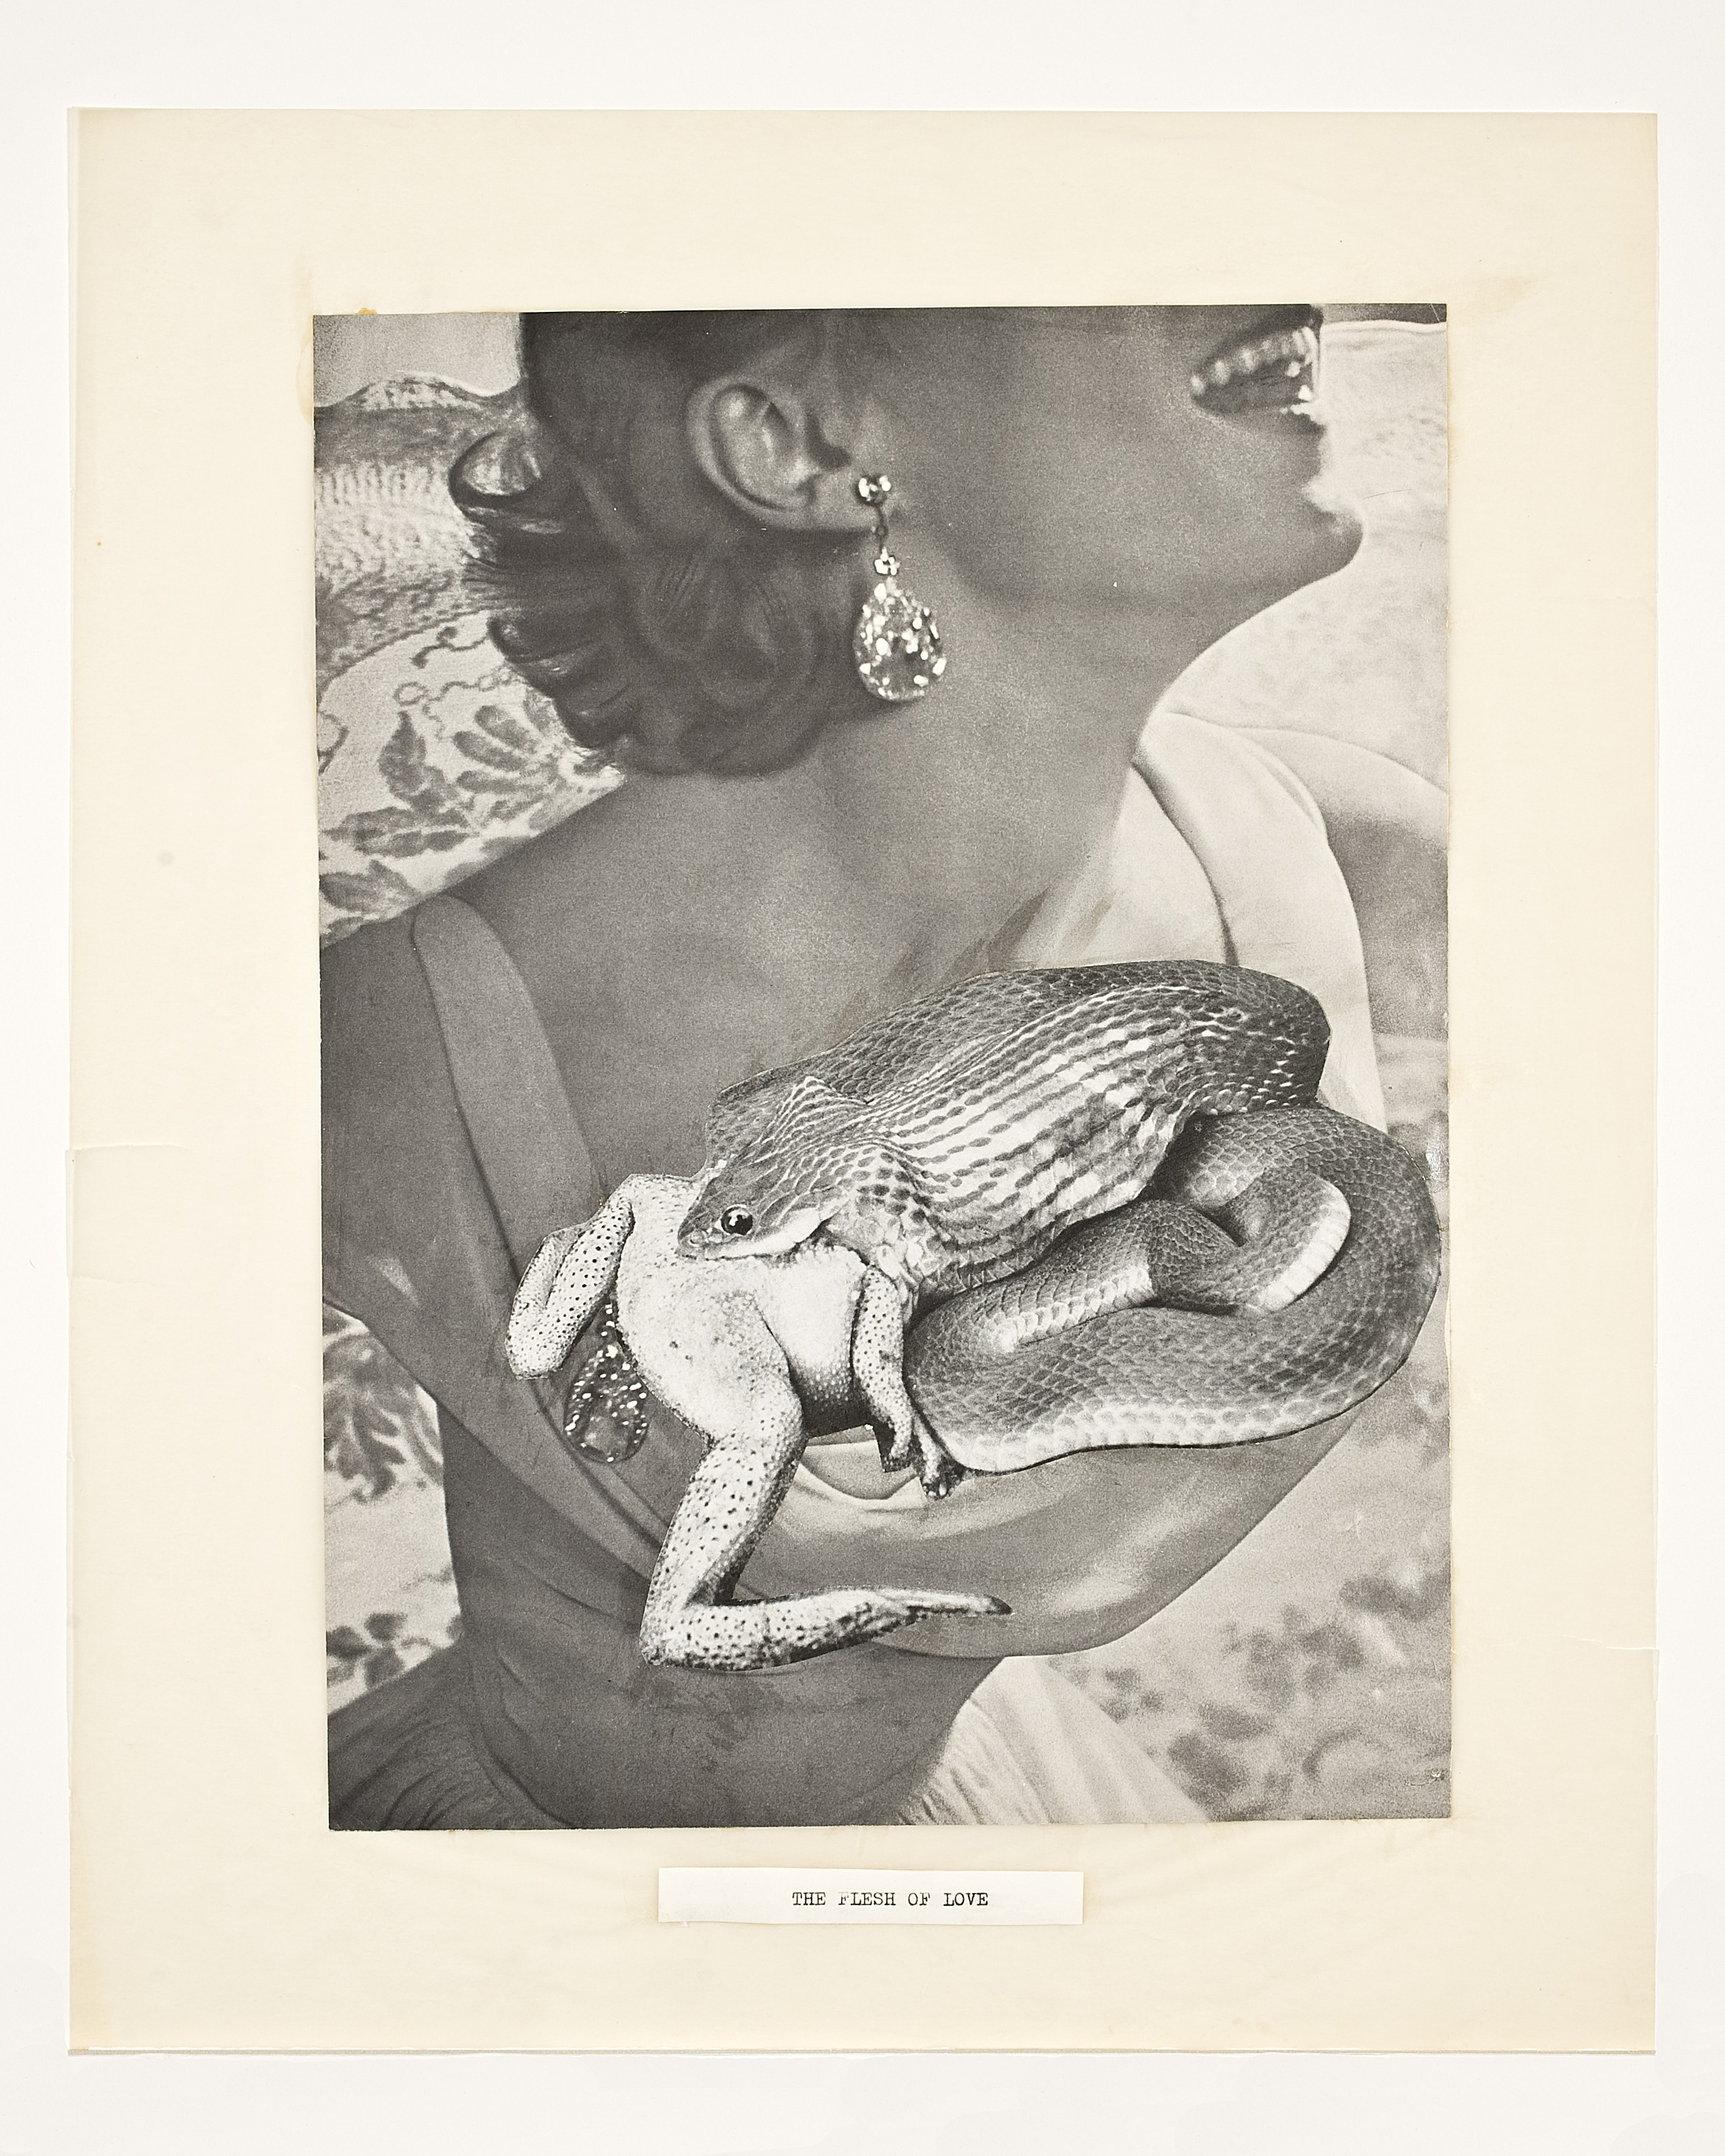 "A woman's body in a gown in the background (cut off above the mouth and below the waist), pasted on top of the woman's chest is a curled snake, with a frog eating another frog pasted on top of the snake. At the bottom, the words ""THE FLESH OF LOVE."""